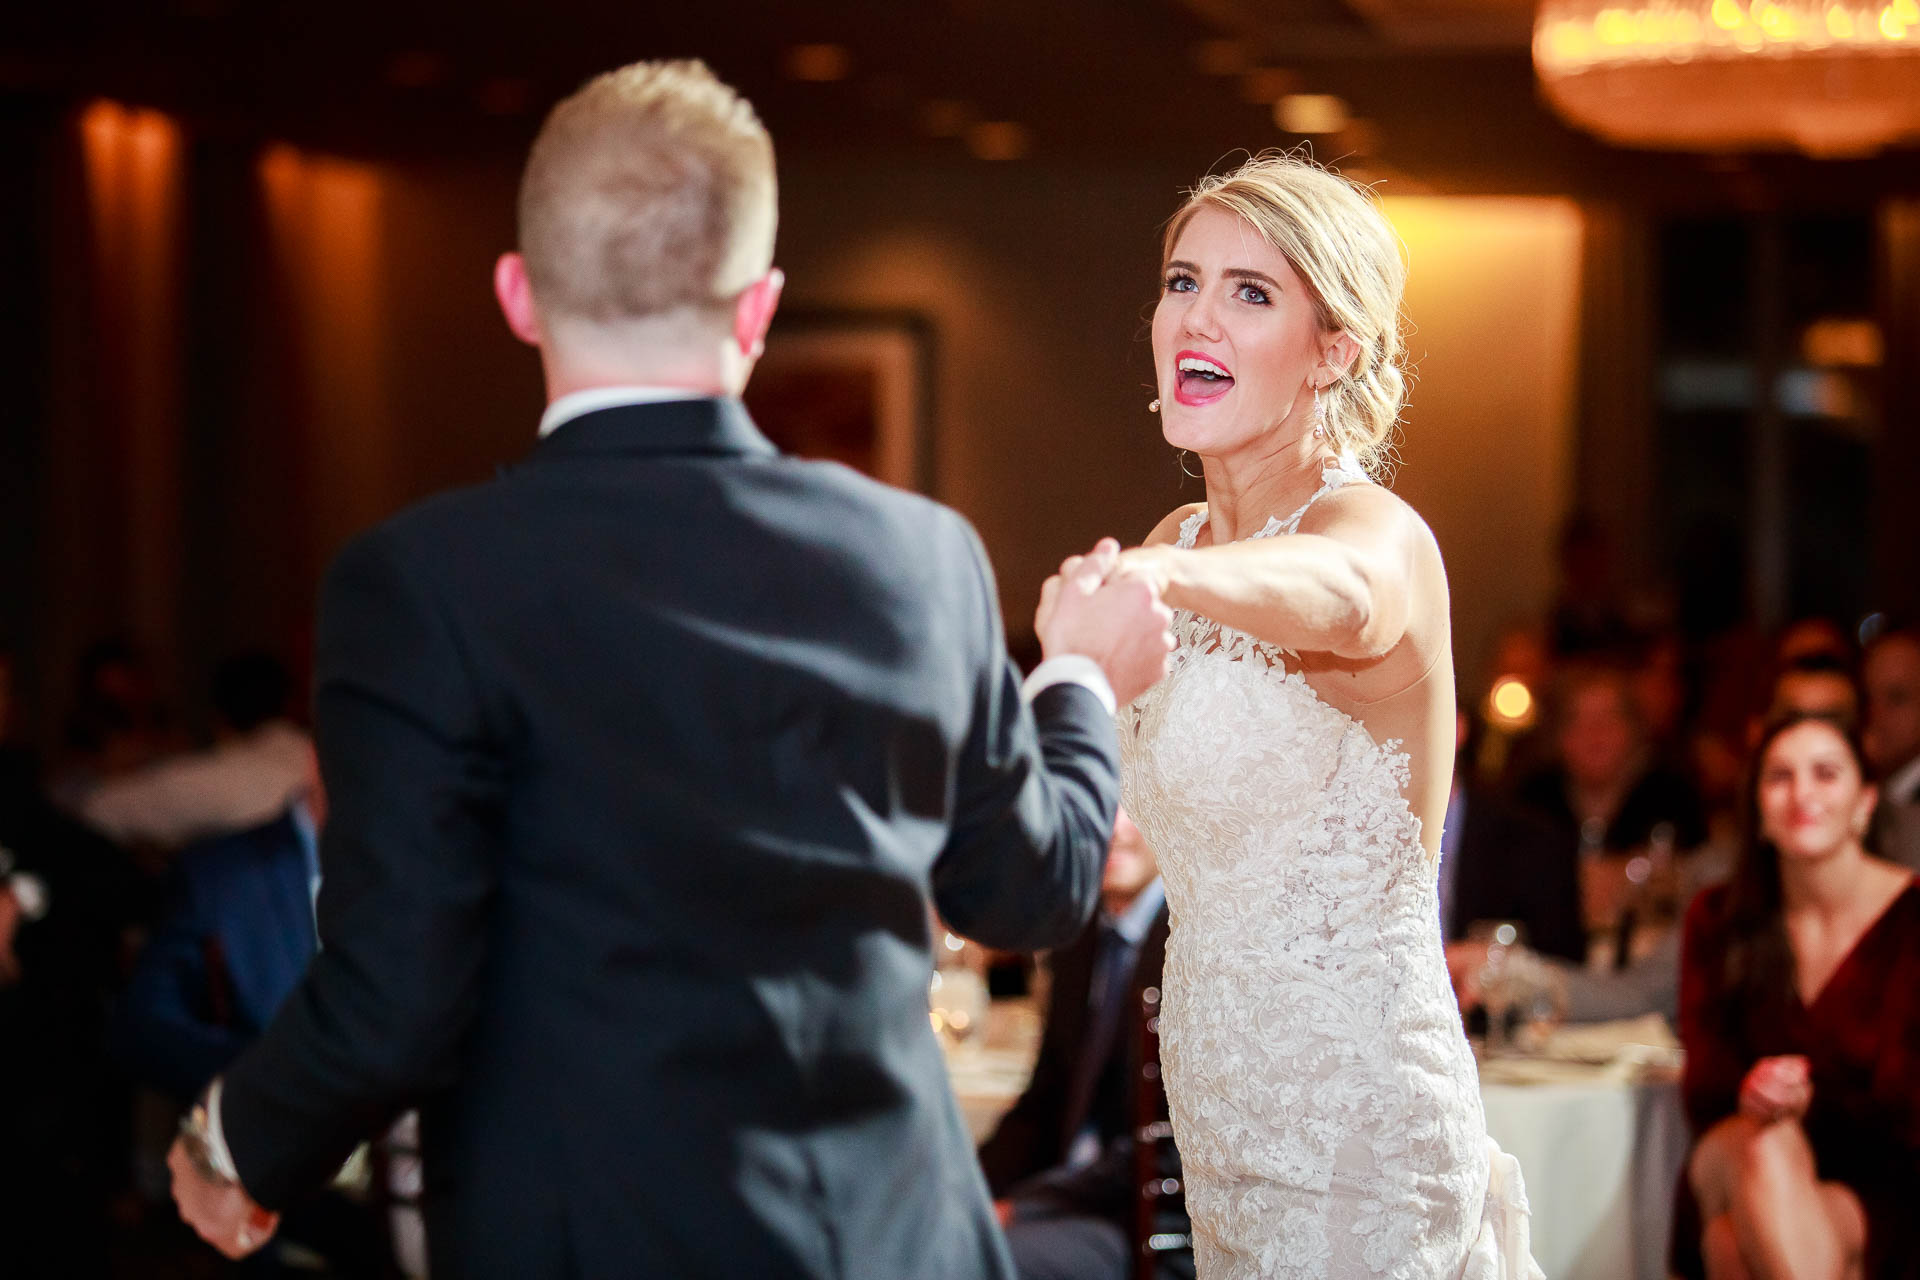 during their wedding reception at the Mid America Club in Chicago.